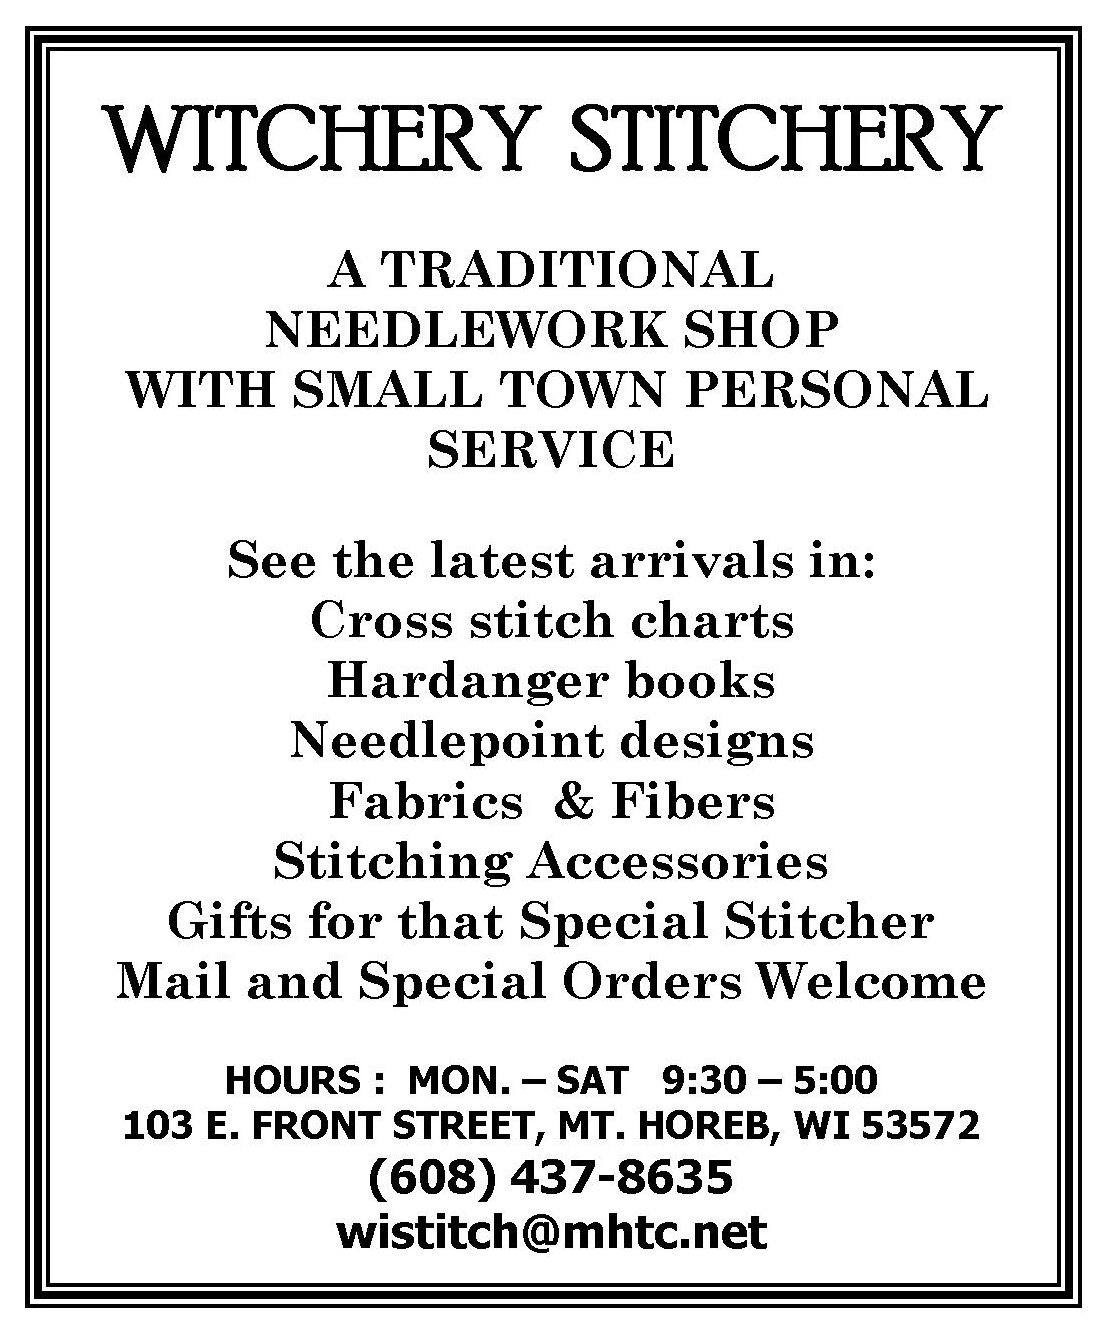 Witchery Stitchery Ad